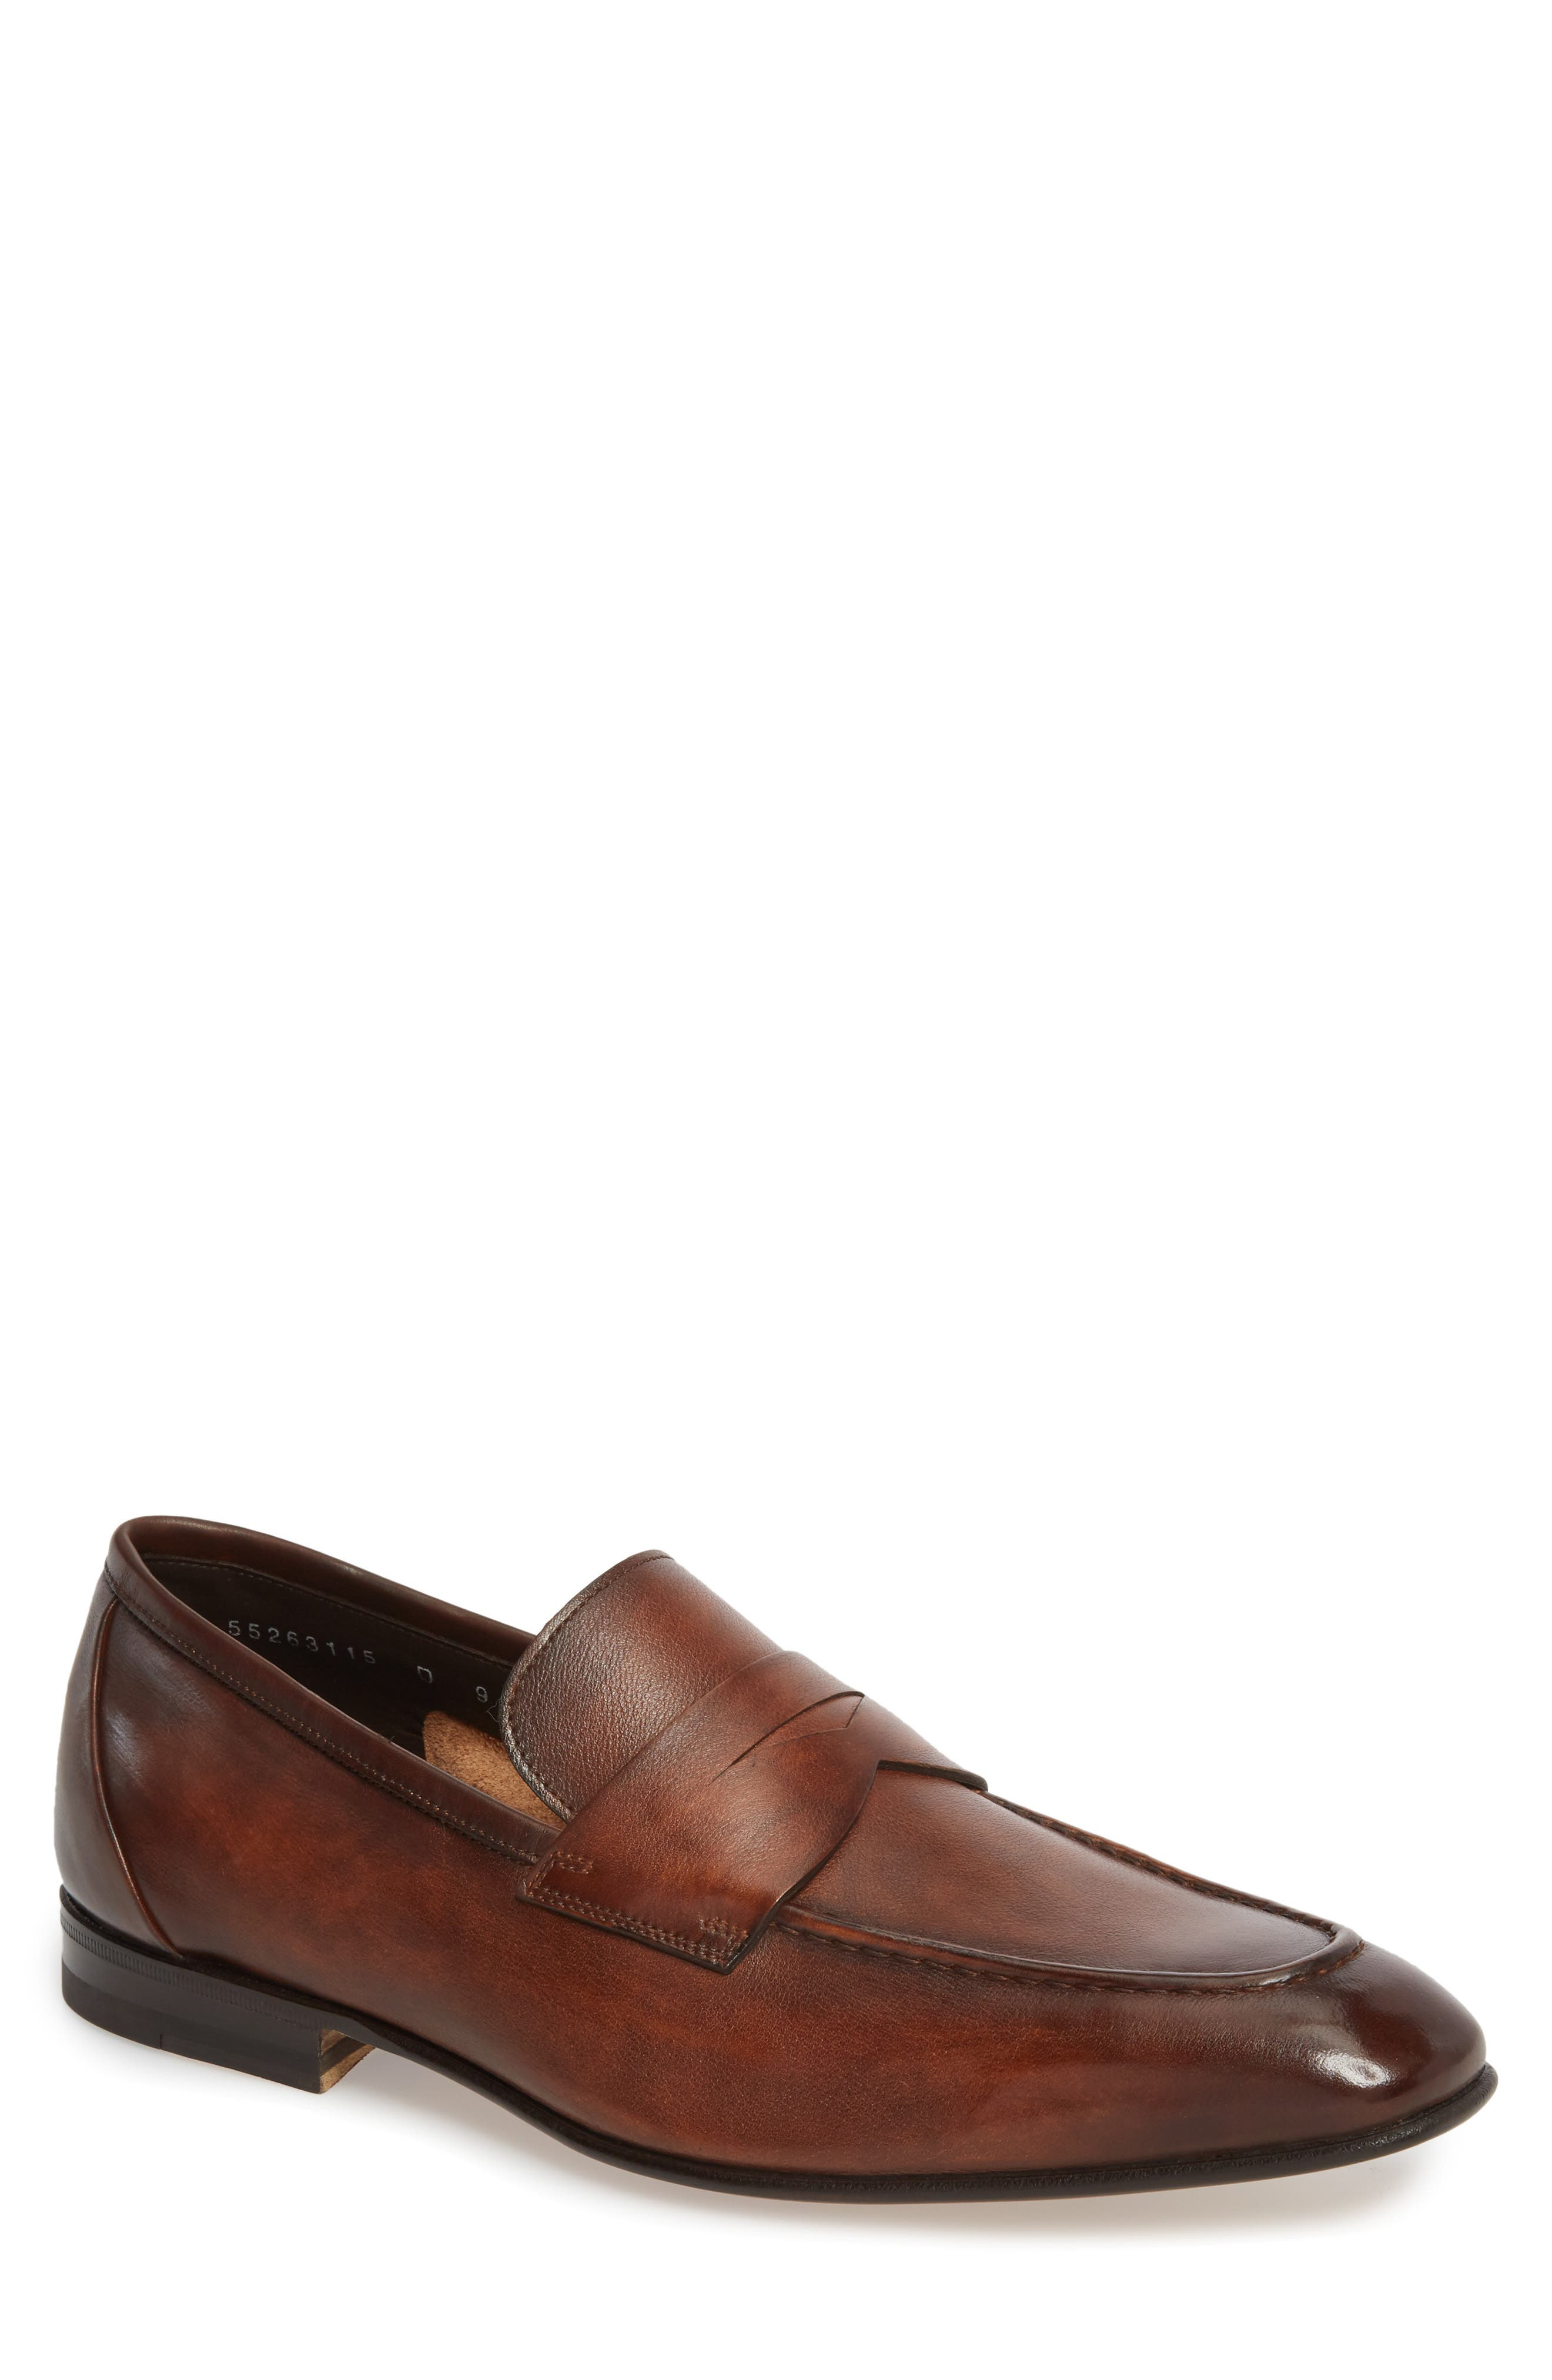 Gannon Penny Loafer,                             Main thumbnail 1, color,                             TAN